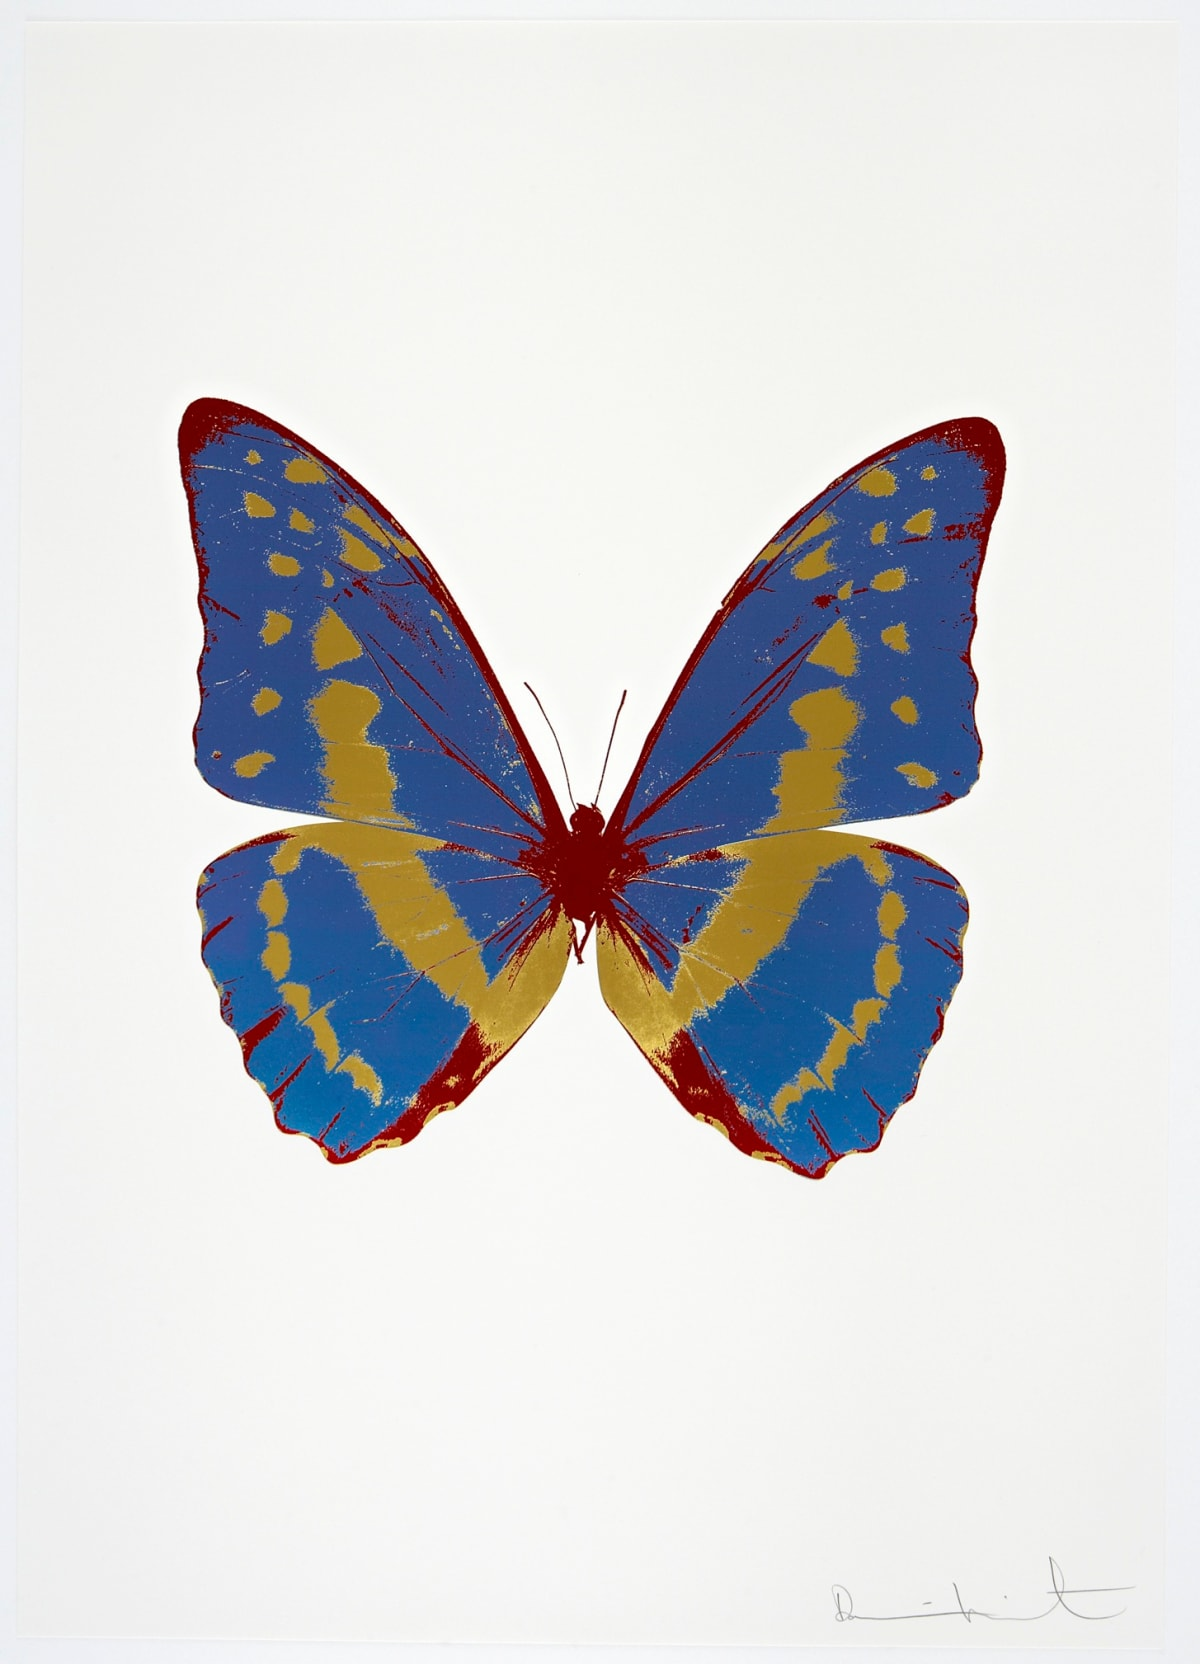 Damien Hirst The Souls III - Frost Blue/Oriental Gold/Chilli Red, 2010 3 colour foil block on 300gsm Arches 88 archival paper. Signed and numbered. Published by Paul Stolper and Other Criteria 72 x 51cm OC7976 / 660-79 Edition of 15